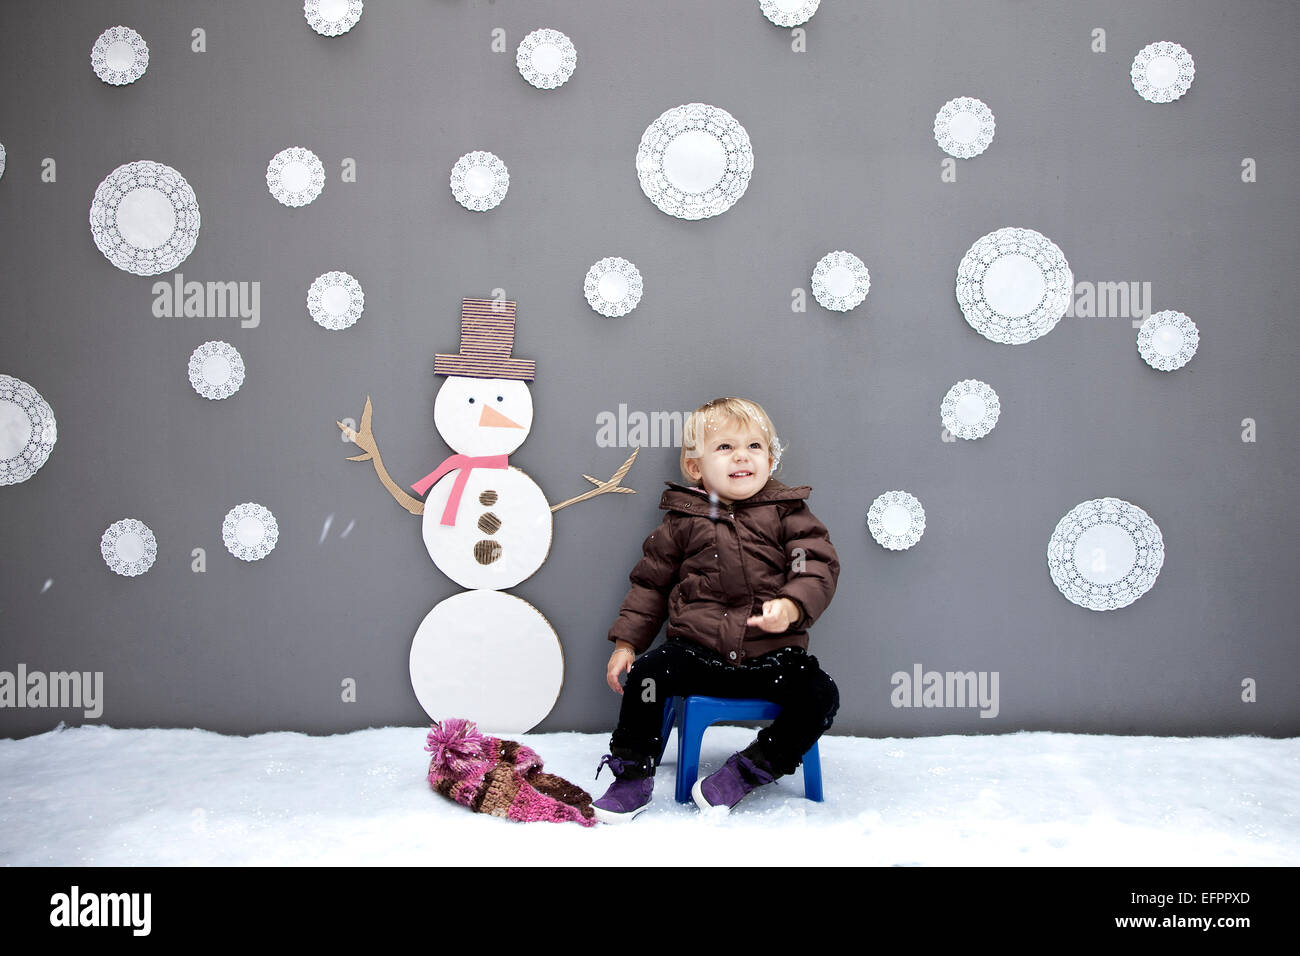 Baby girl with snowflake and snowman cutouts - Stock Image